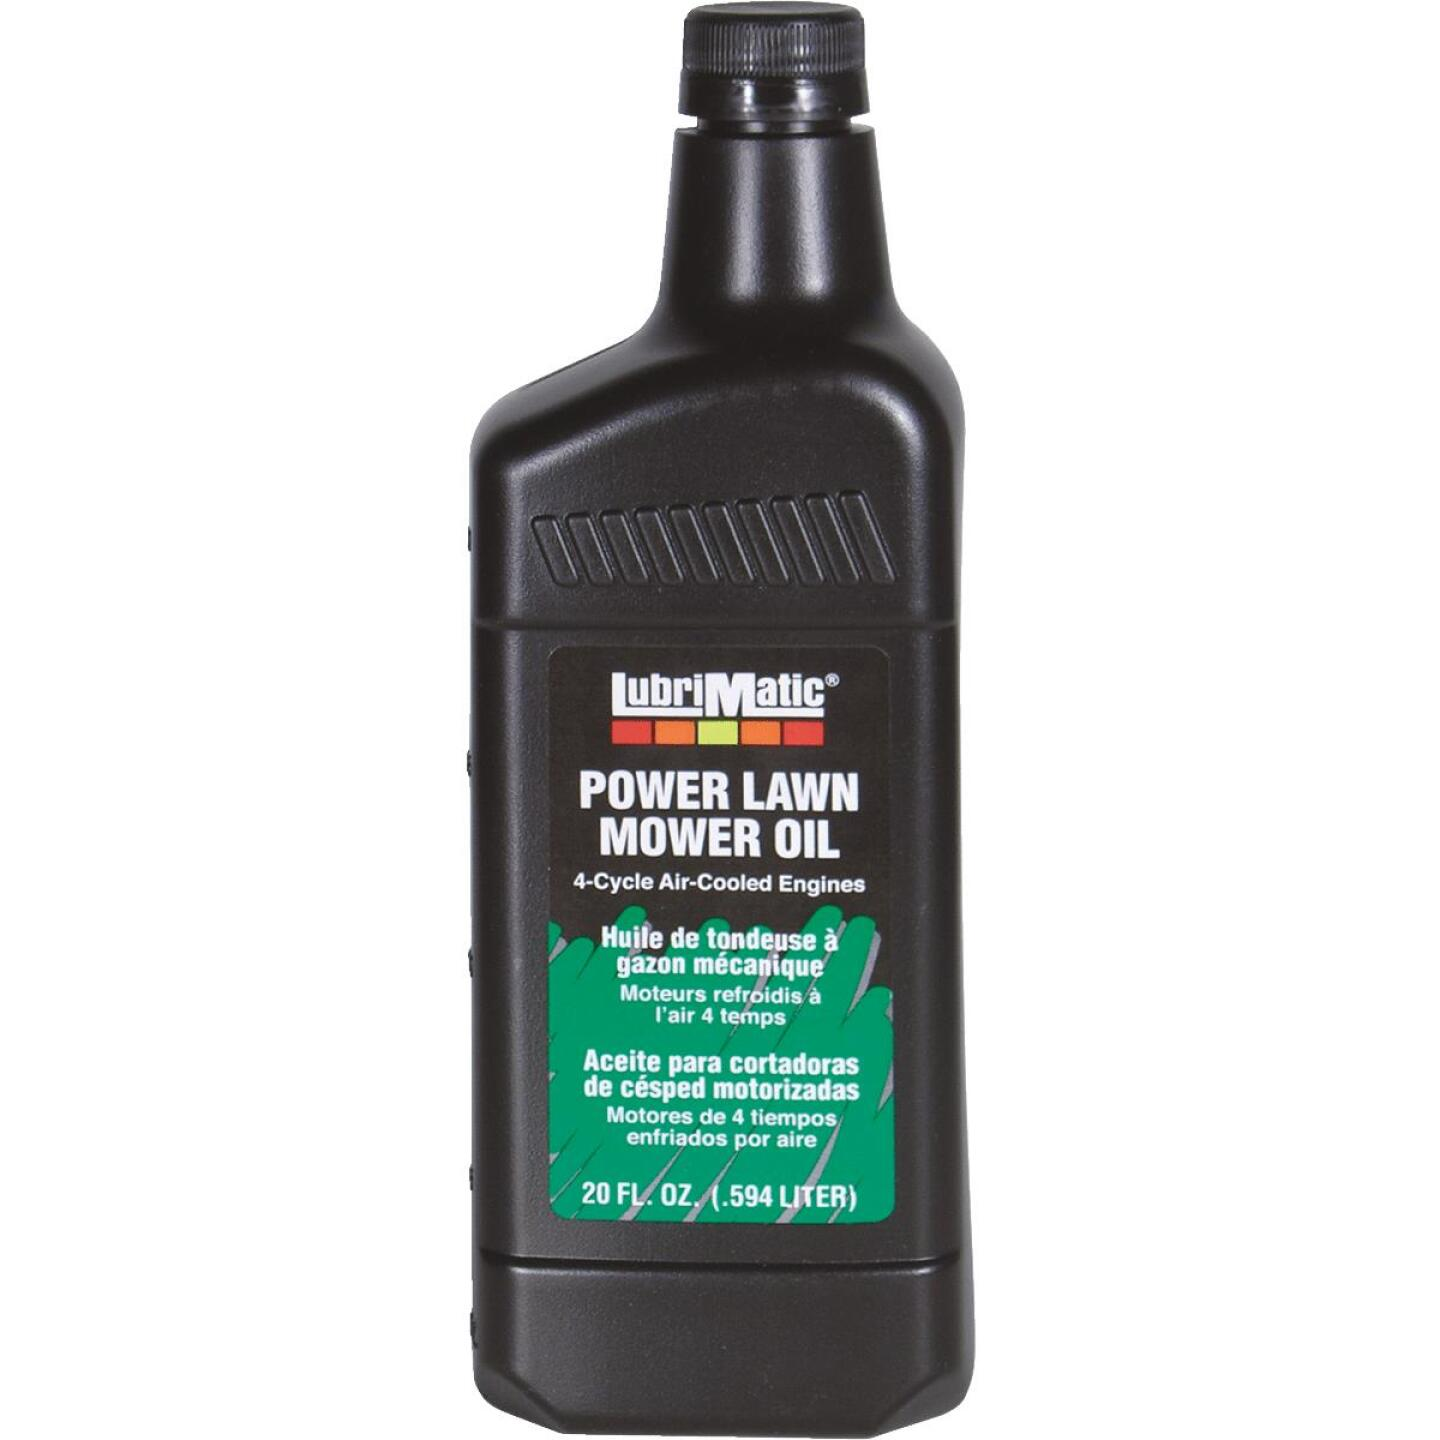 LubriMatic 30W 20 oz 4-Cycle Power Motor Oil Image 1